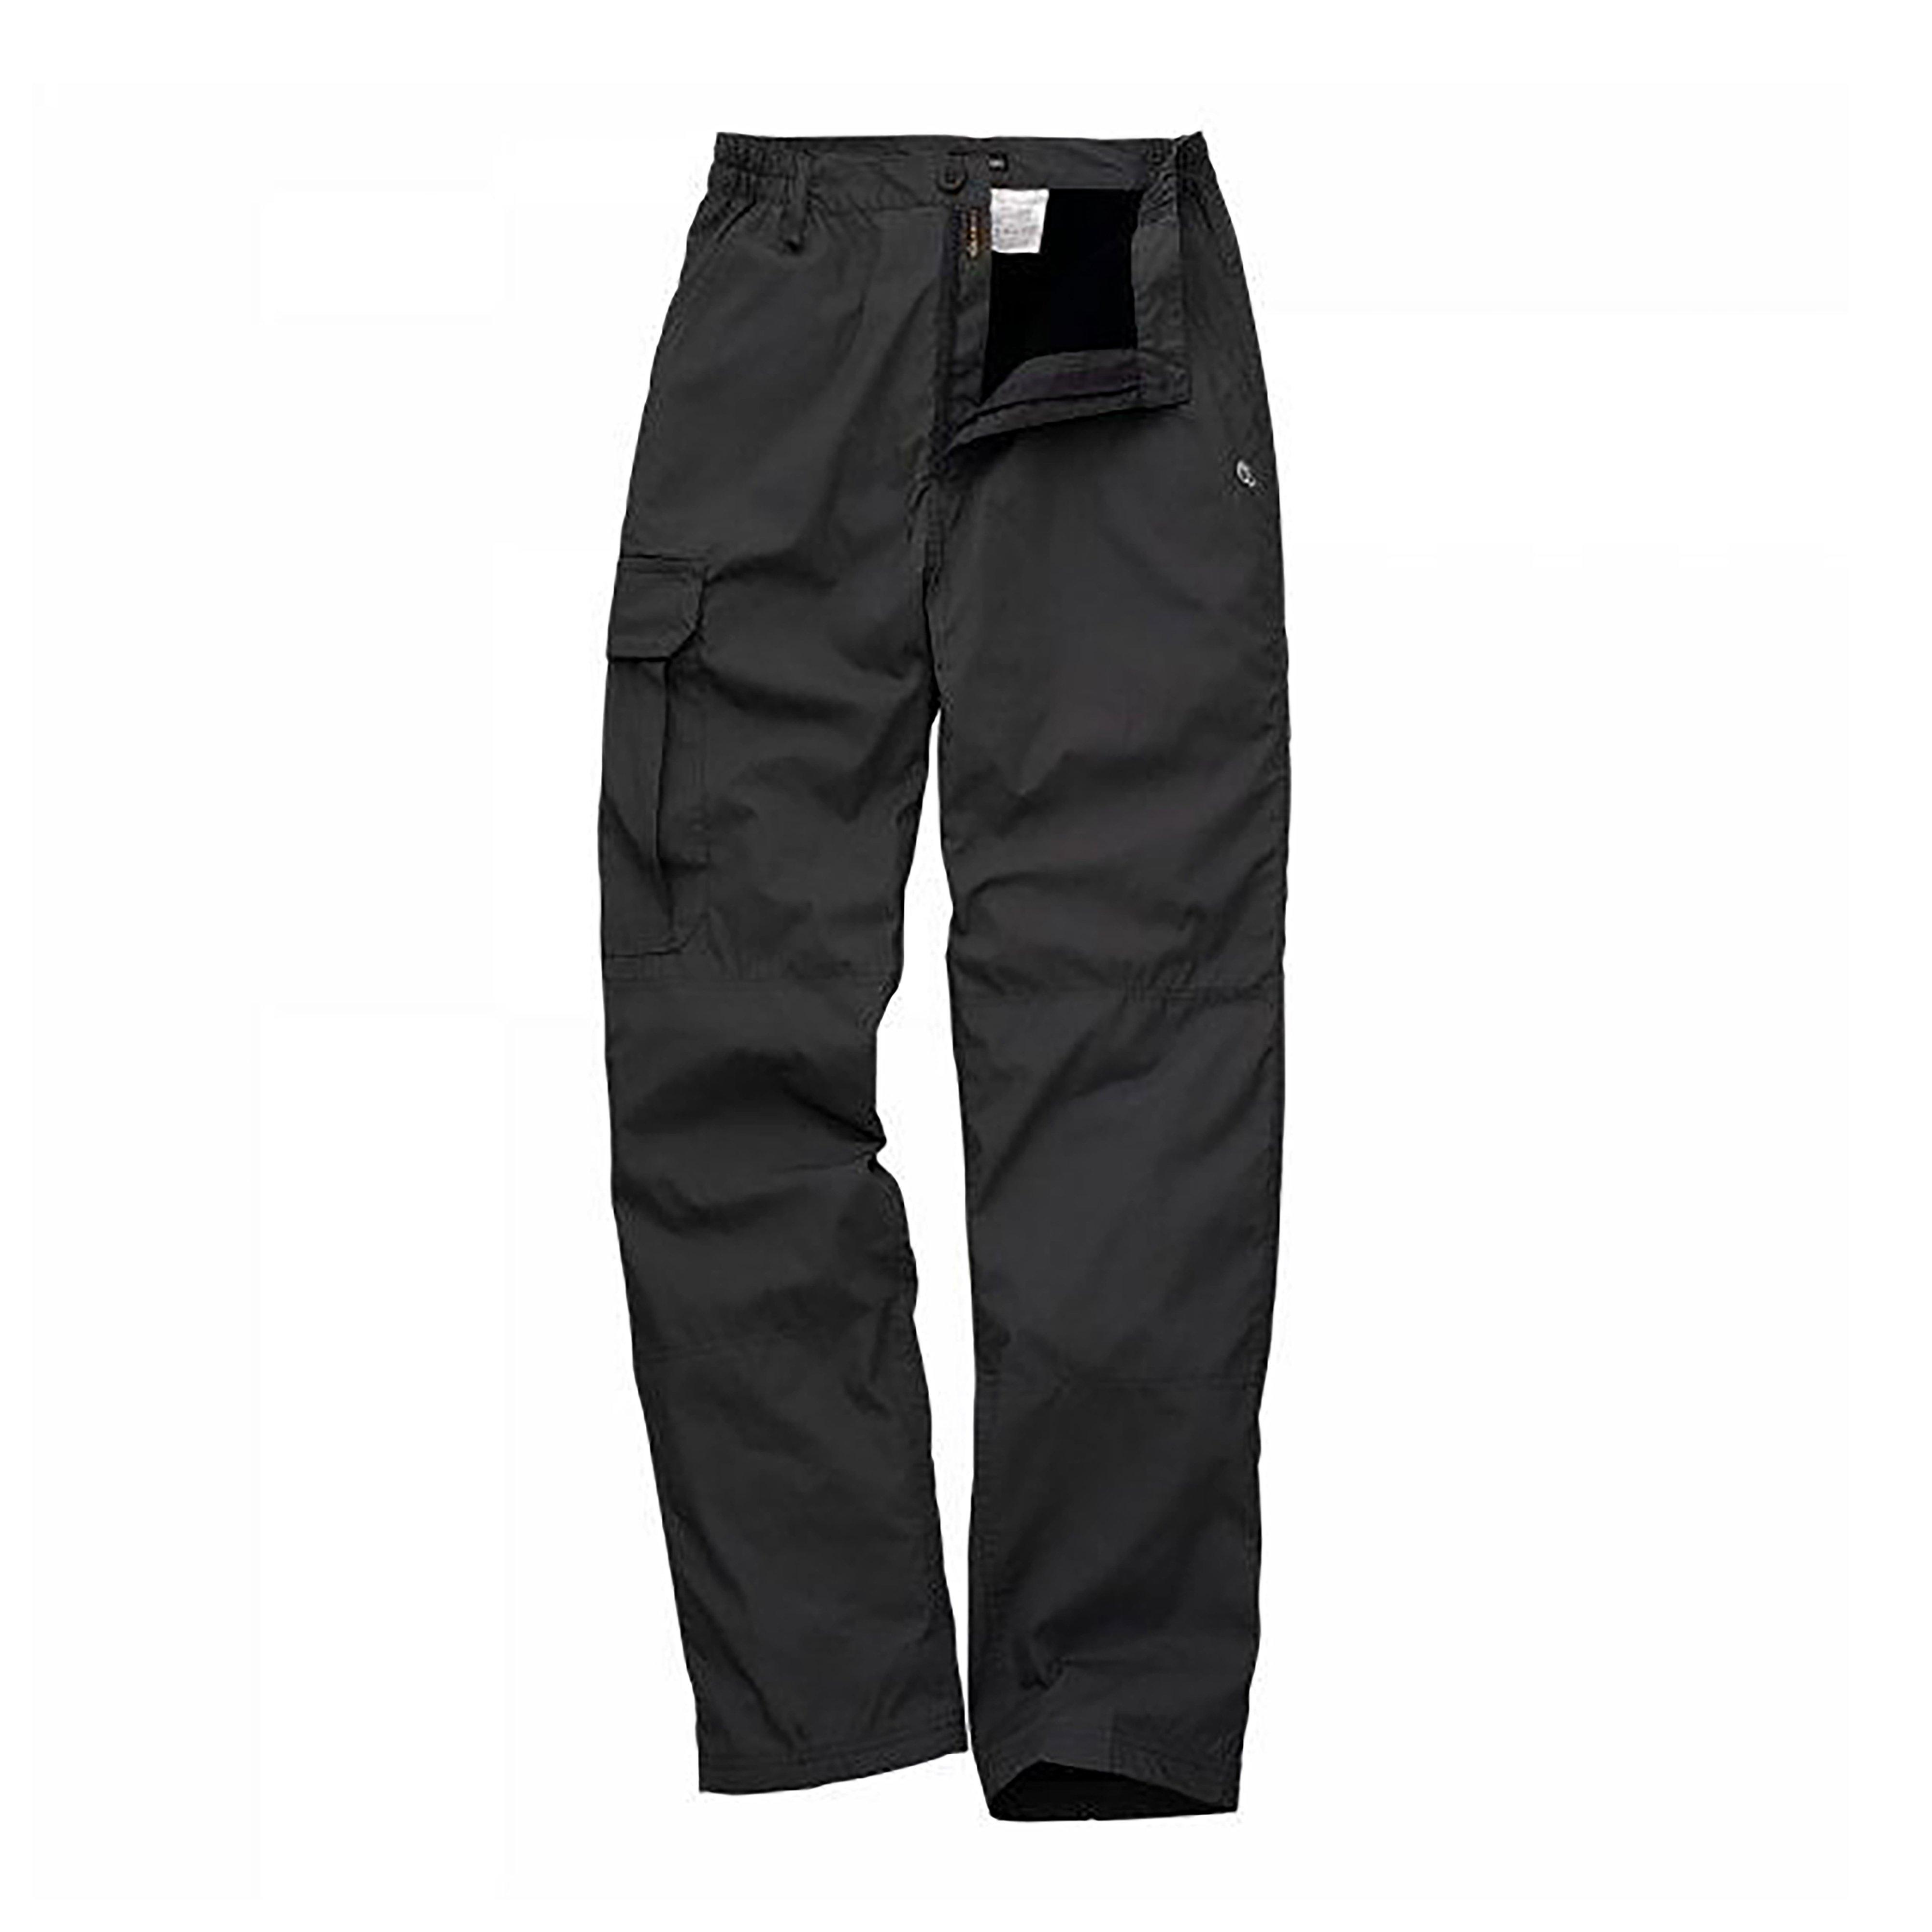 Craghoppers Mens Basecamp Winter Lined Trousers Black